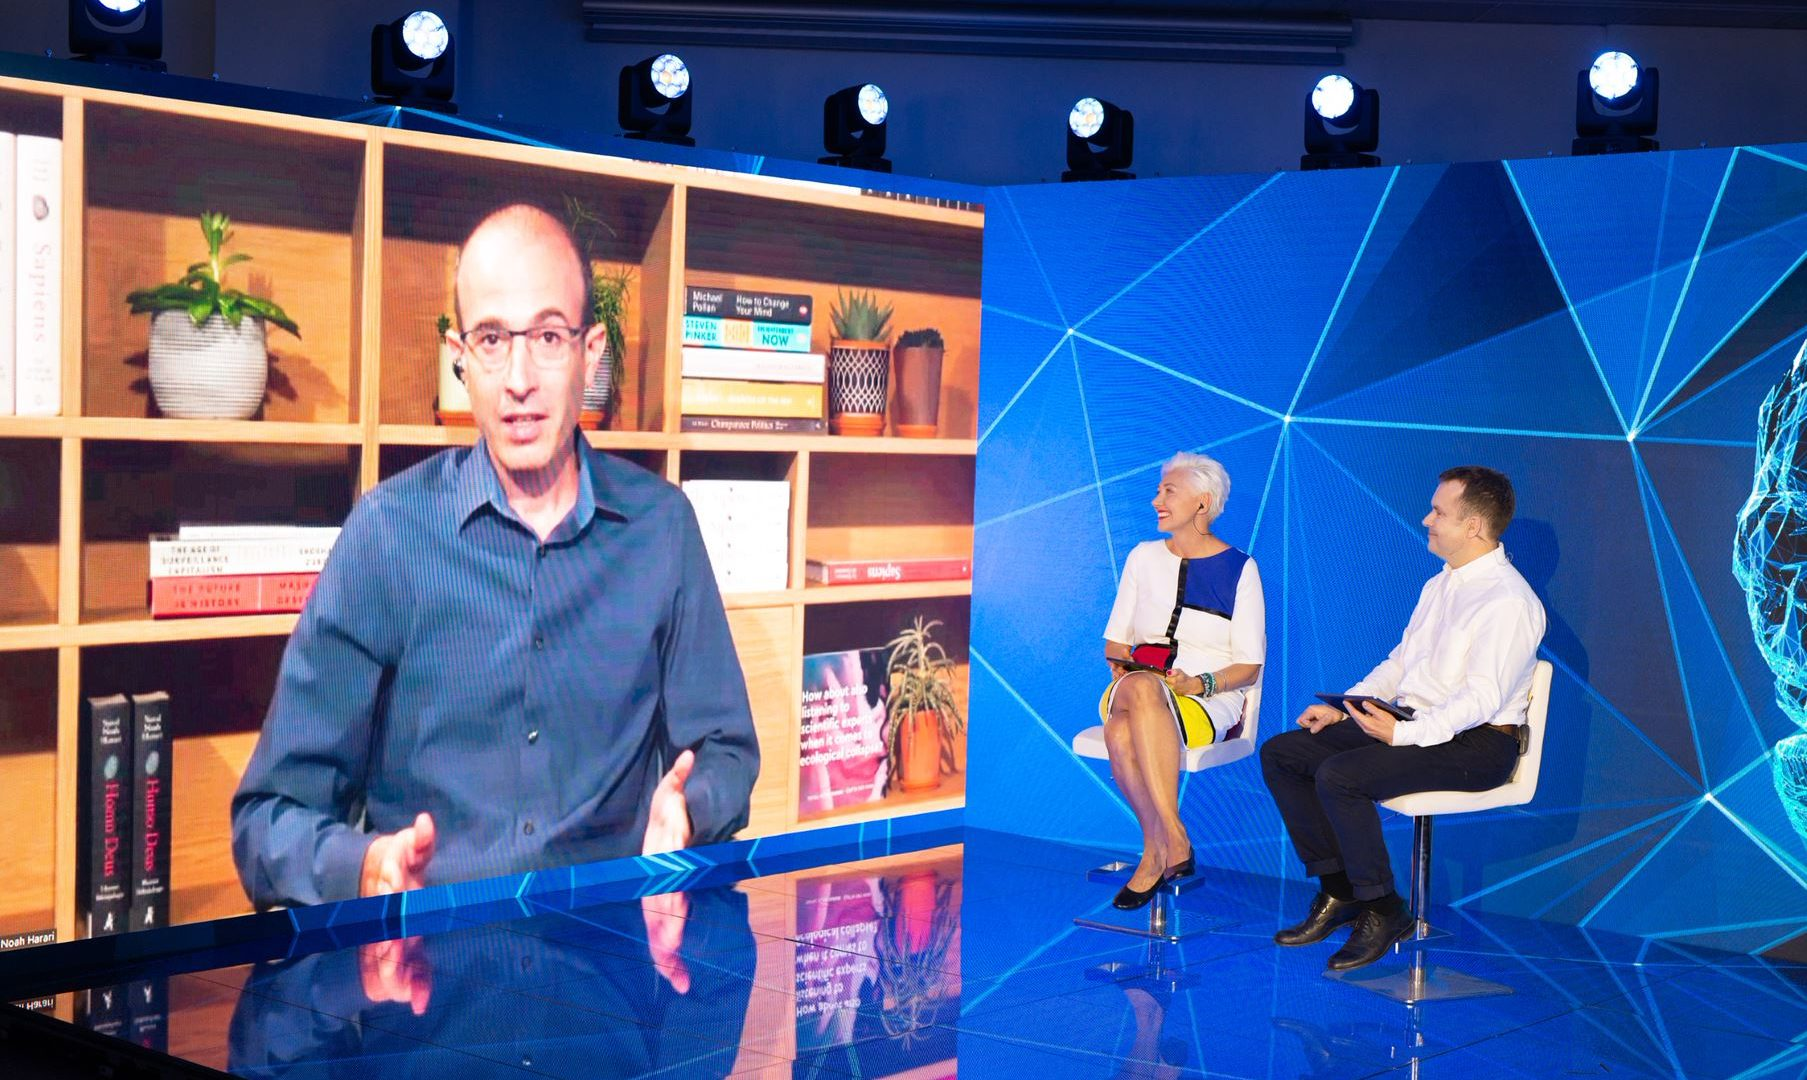 Yuval Noah Harari was a speaker at Masters & Robots 2020, hosted by Jowita Michalska of Digital University and Richard Stephens of Poland Today